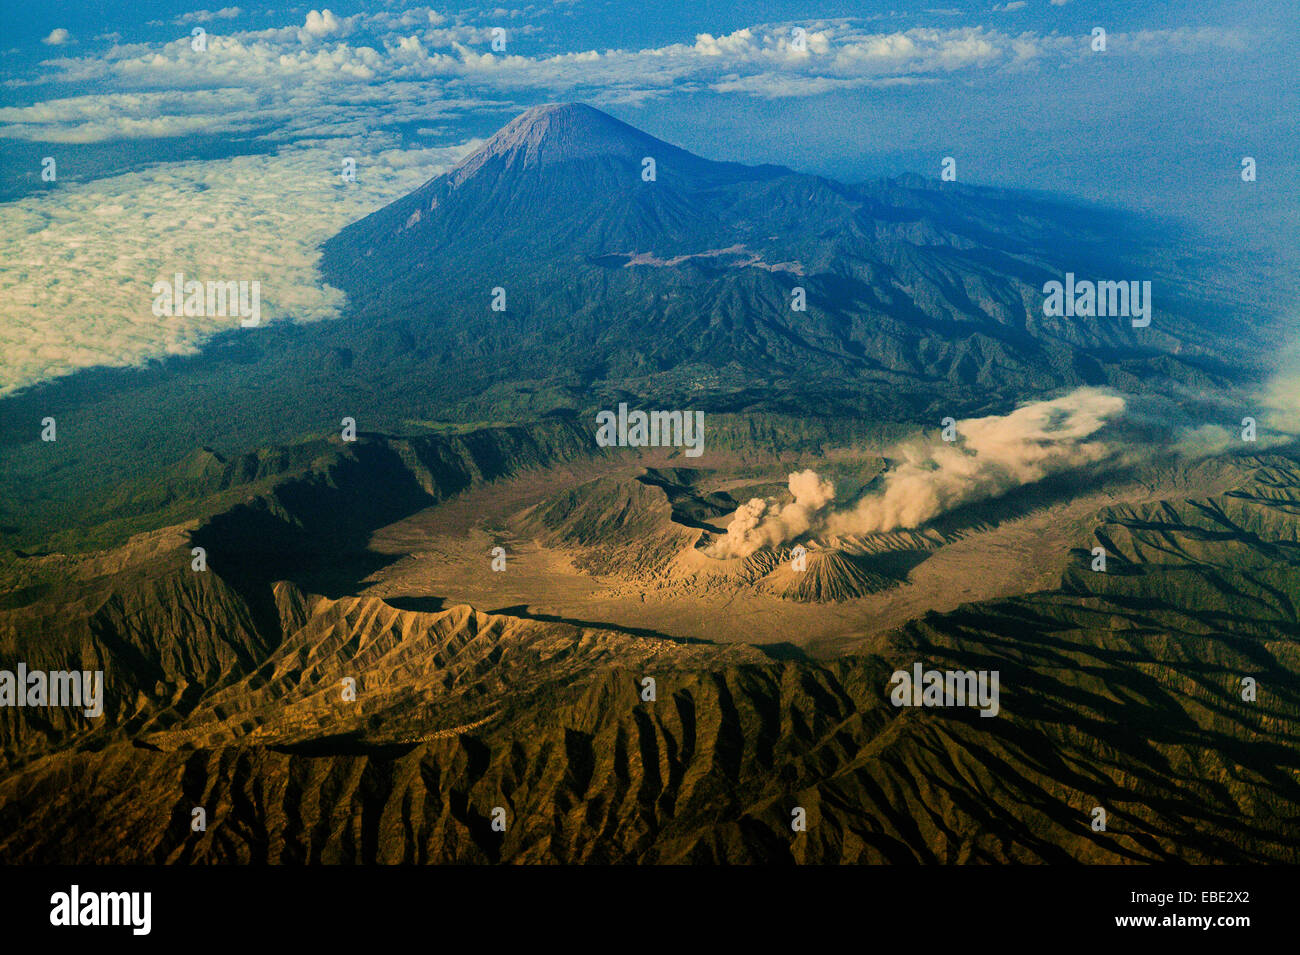 Bromo Tengger Semeru National Park seen from above. Mount Semeru (background) is the highest mountain in Java Island, - Stock Image